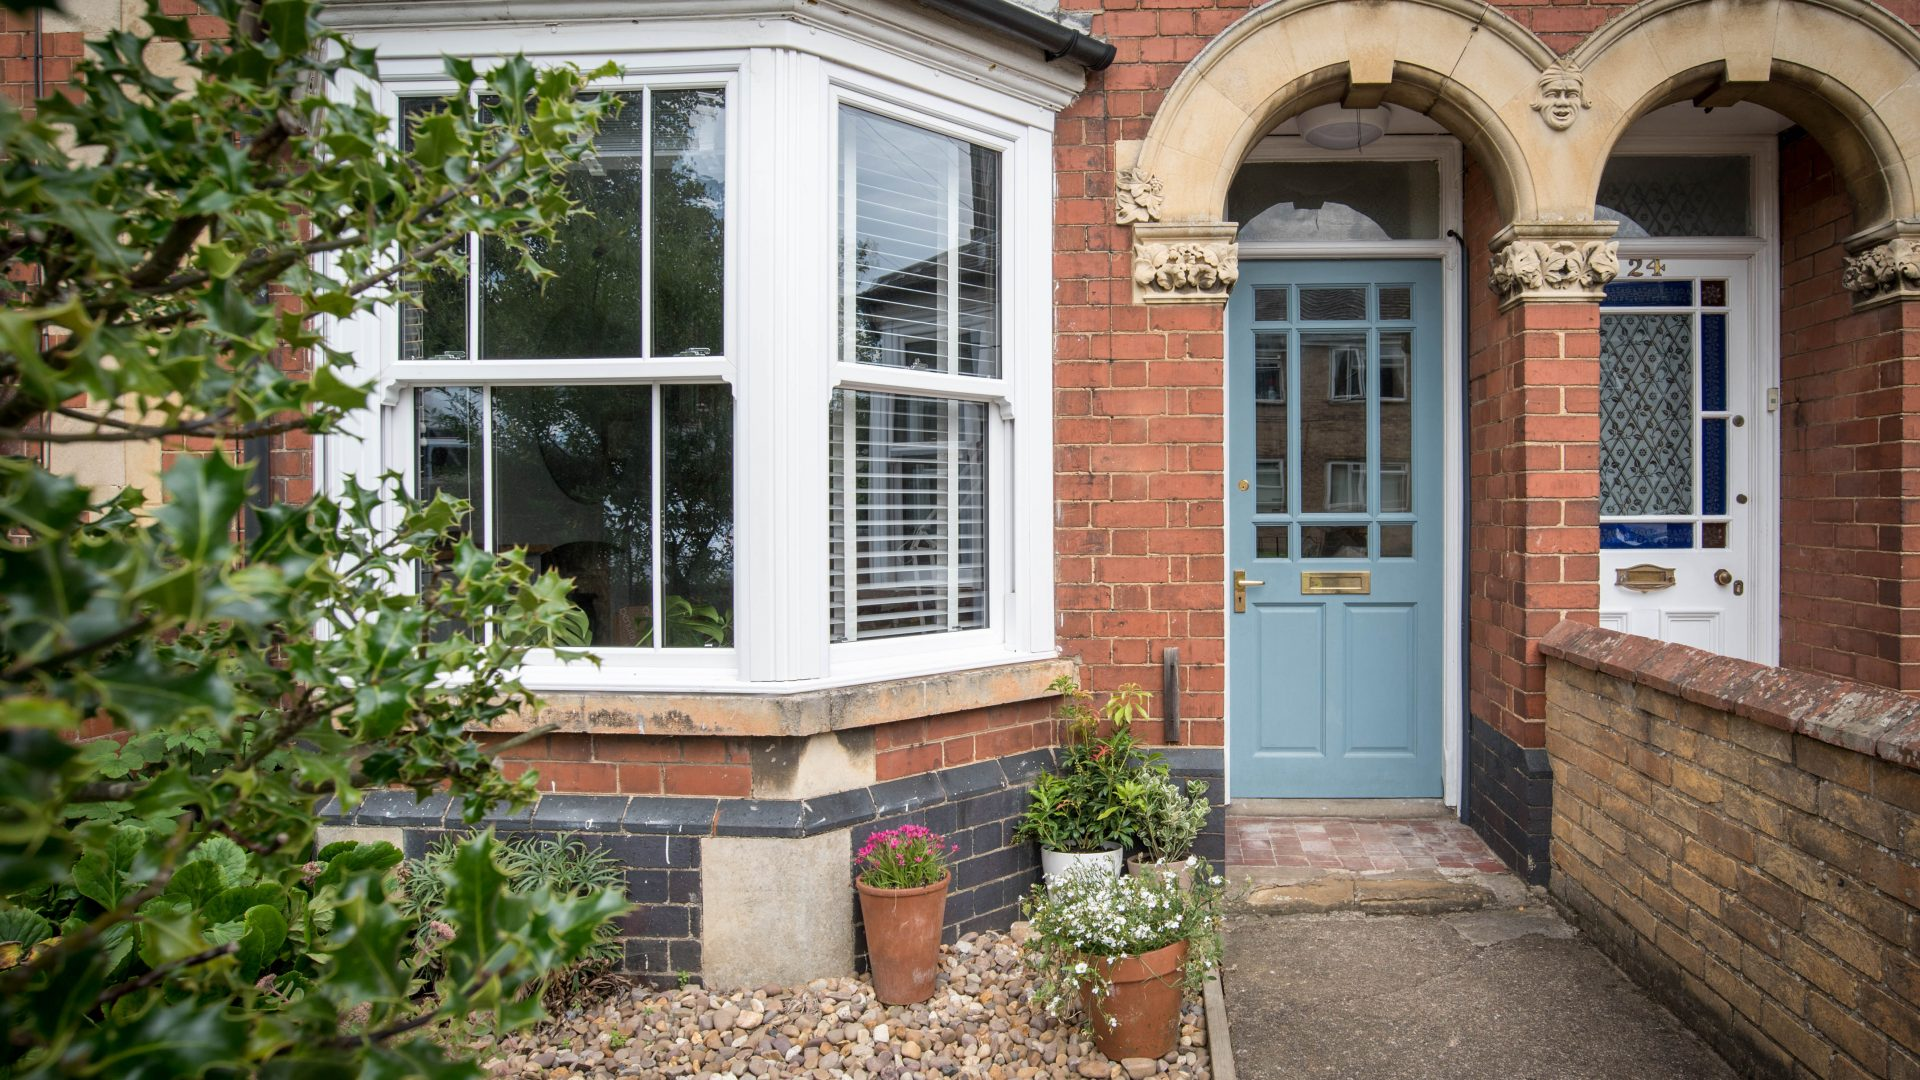 Kings Road, Stamford for sale with Mr and Mrs Clarke estate agent